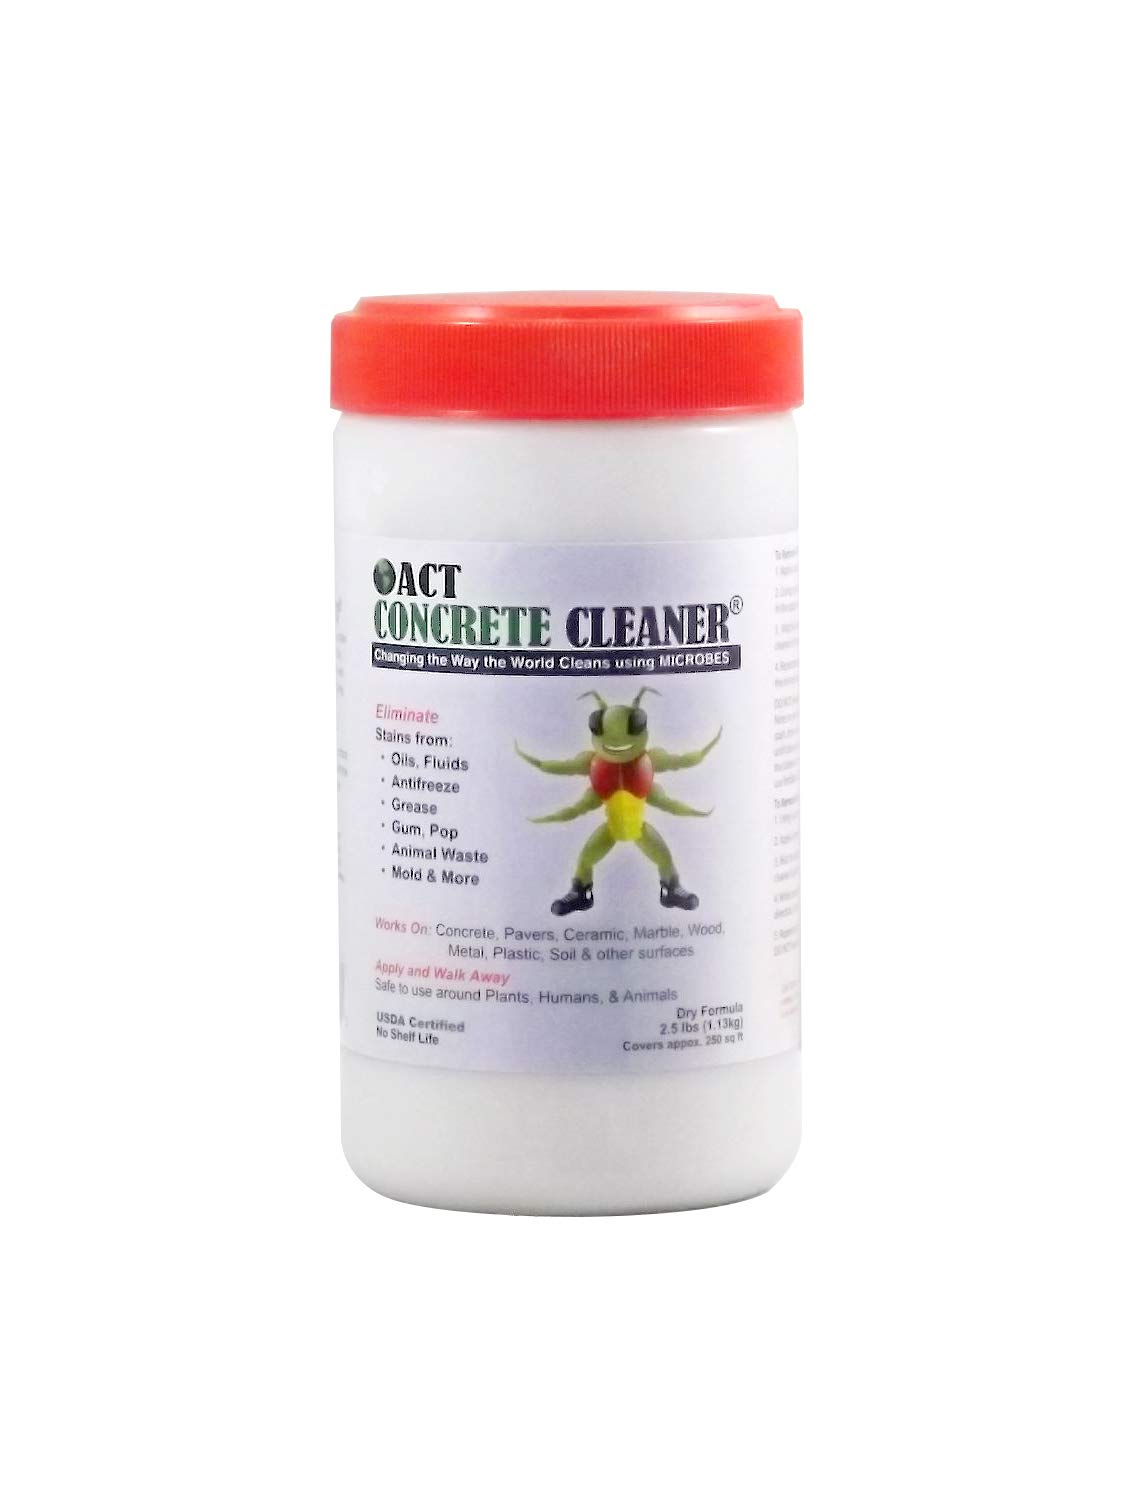 ACT Concrete Cleaner and Degreaser - Industrial and Residential - Remove Oil, Grease, Animal, and Mildew Stains - Perfect For Your Driveway, Garage, or Warehouse - Biodegradable and Non-Toxic American Cleaning Technologies CC-2.5lb